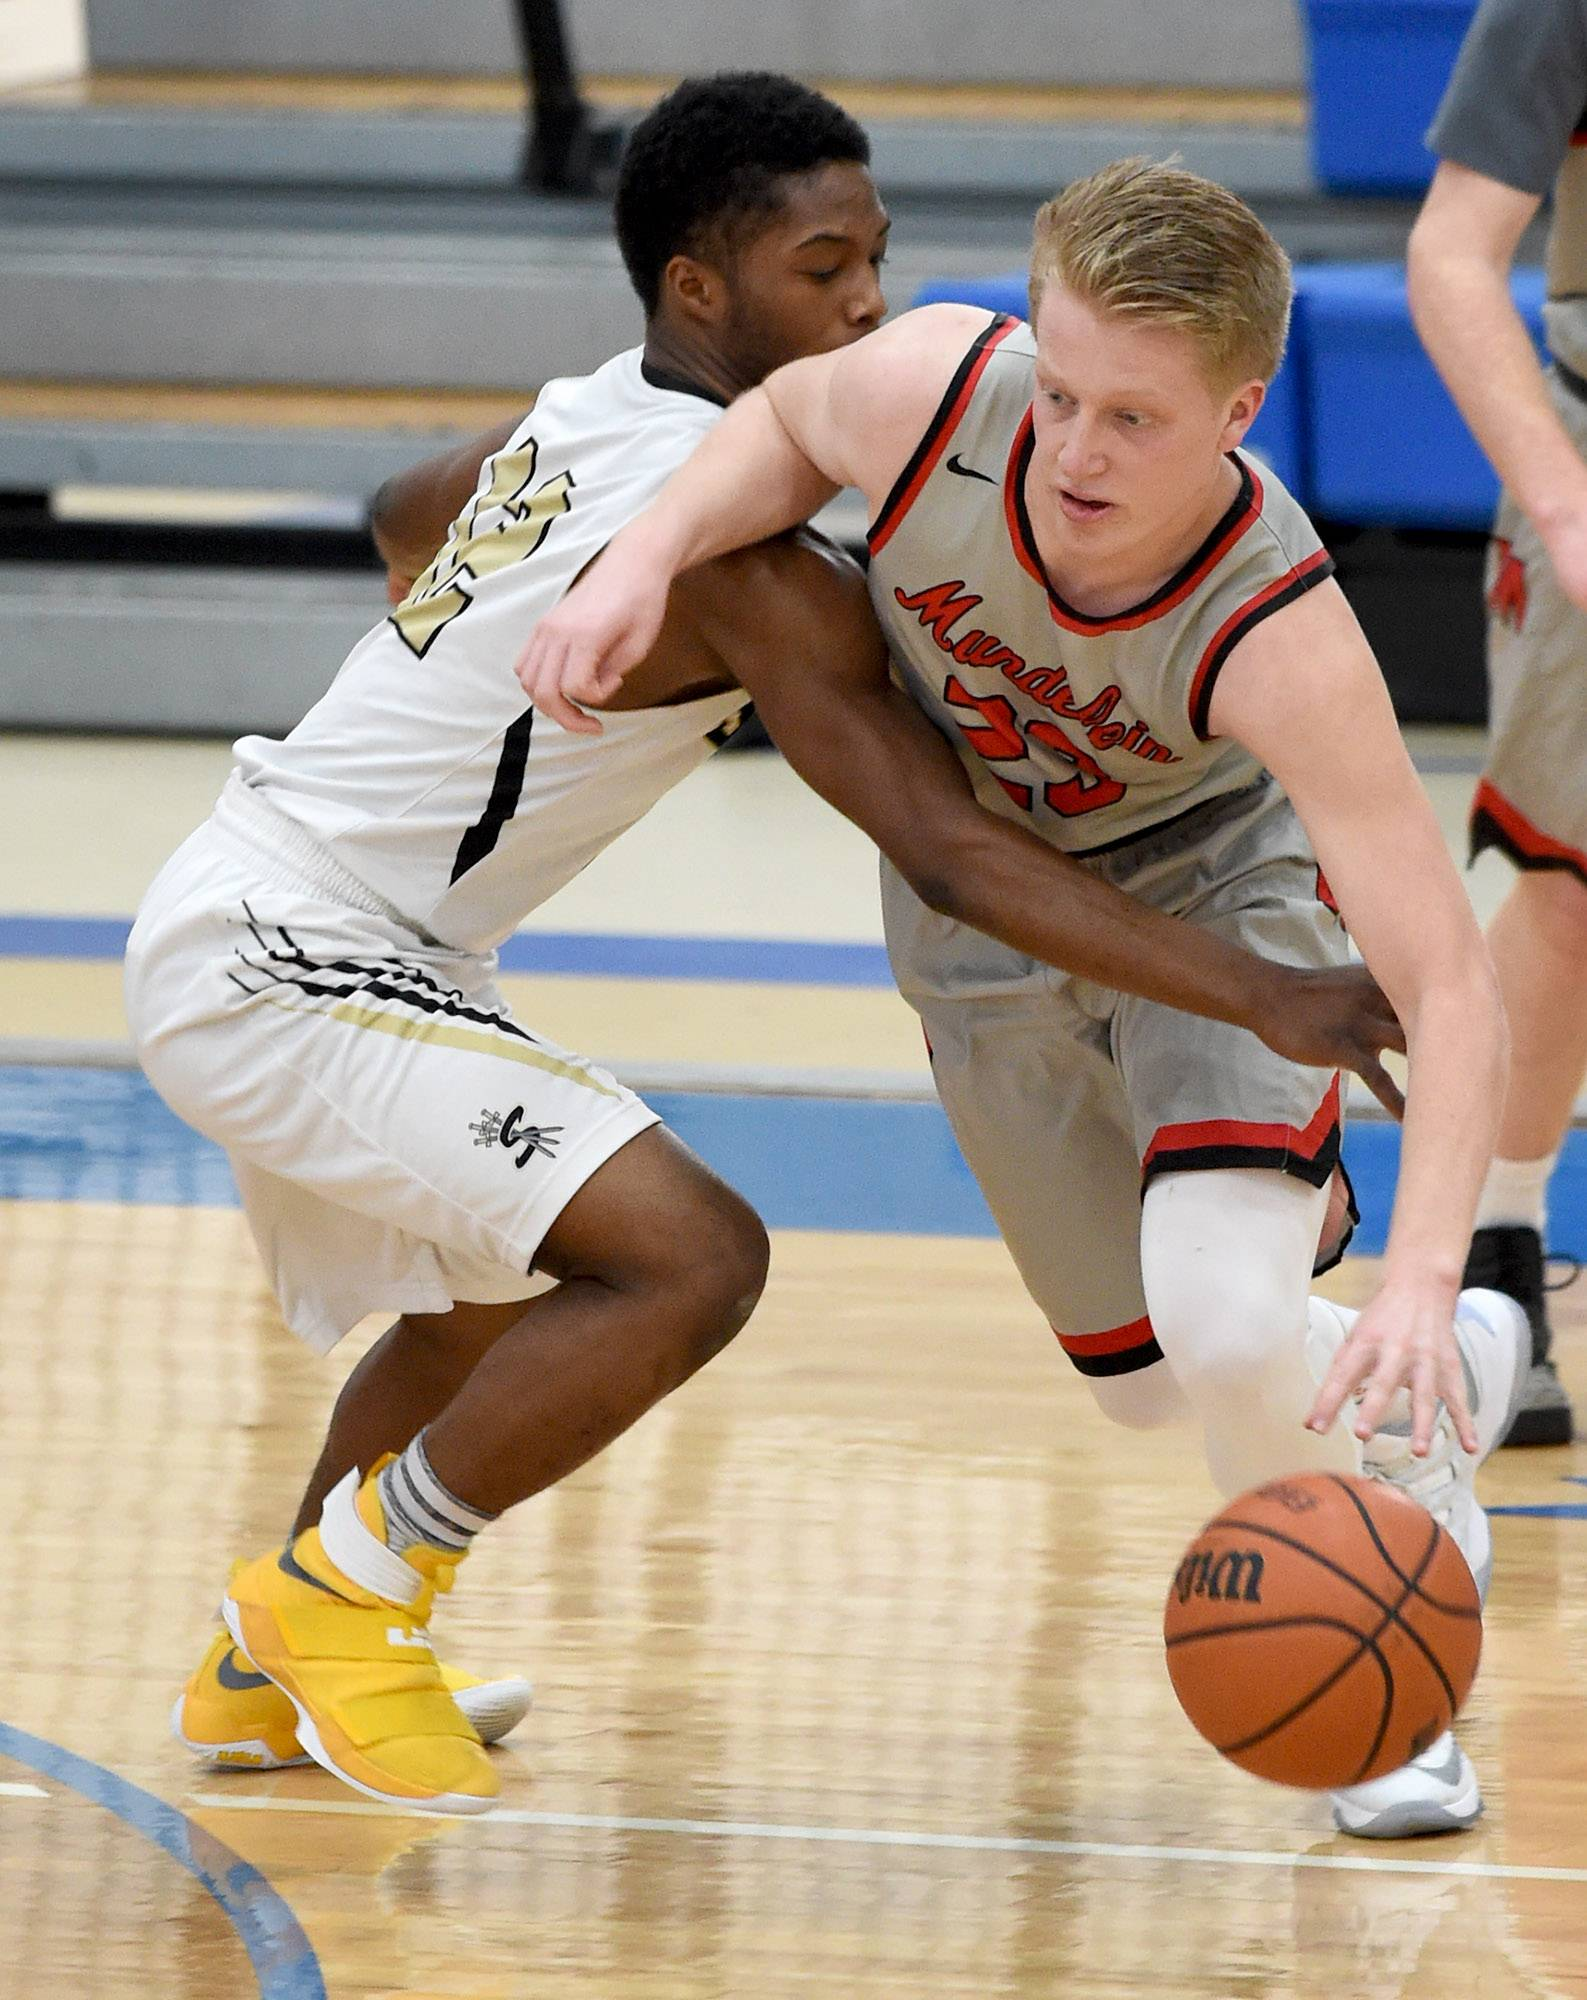 Streamwood's Antuan Patterson (12) reaches in to tip the ball from Mundelein's Tommy Marcotte (23) on Saturday at Lake Zurich.